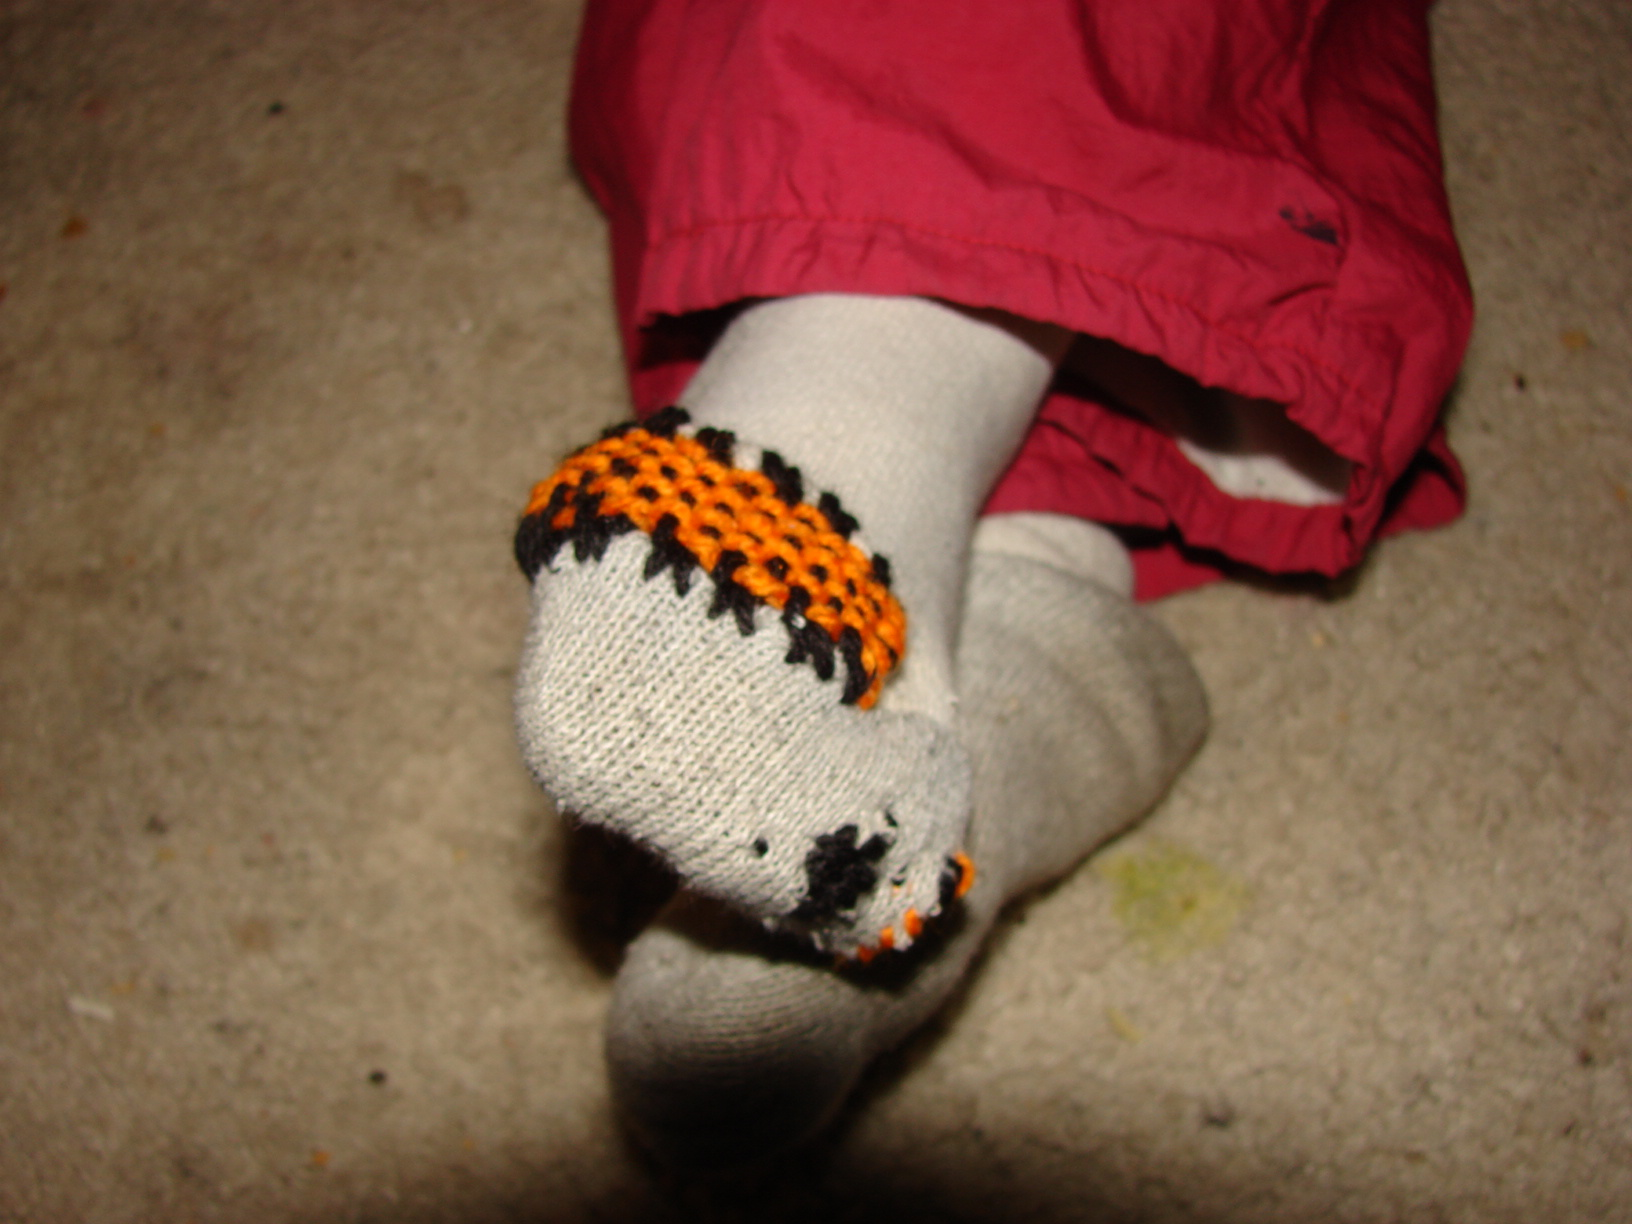 How To Mend A Sock 8 Steps With Pictures Instructables